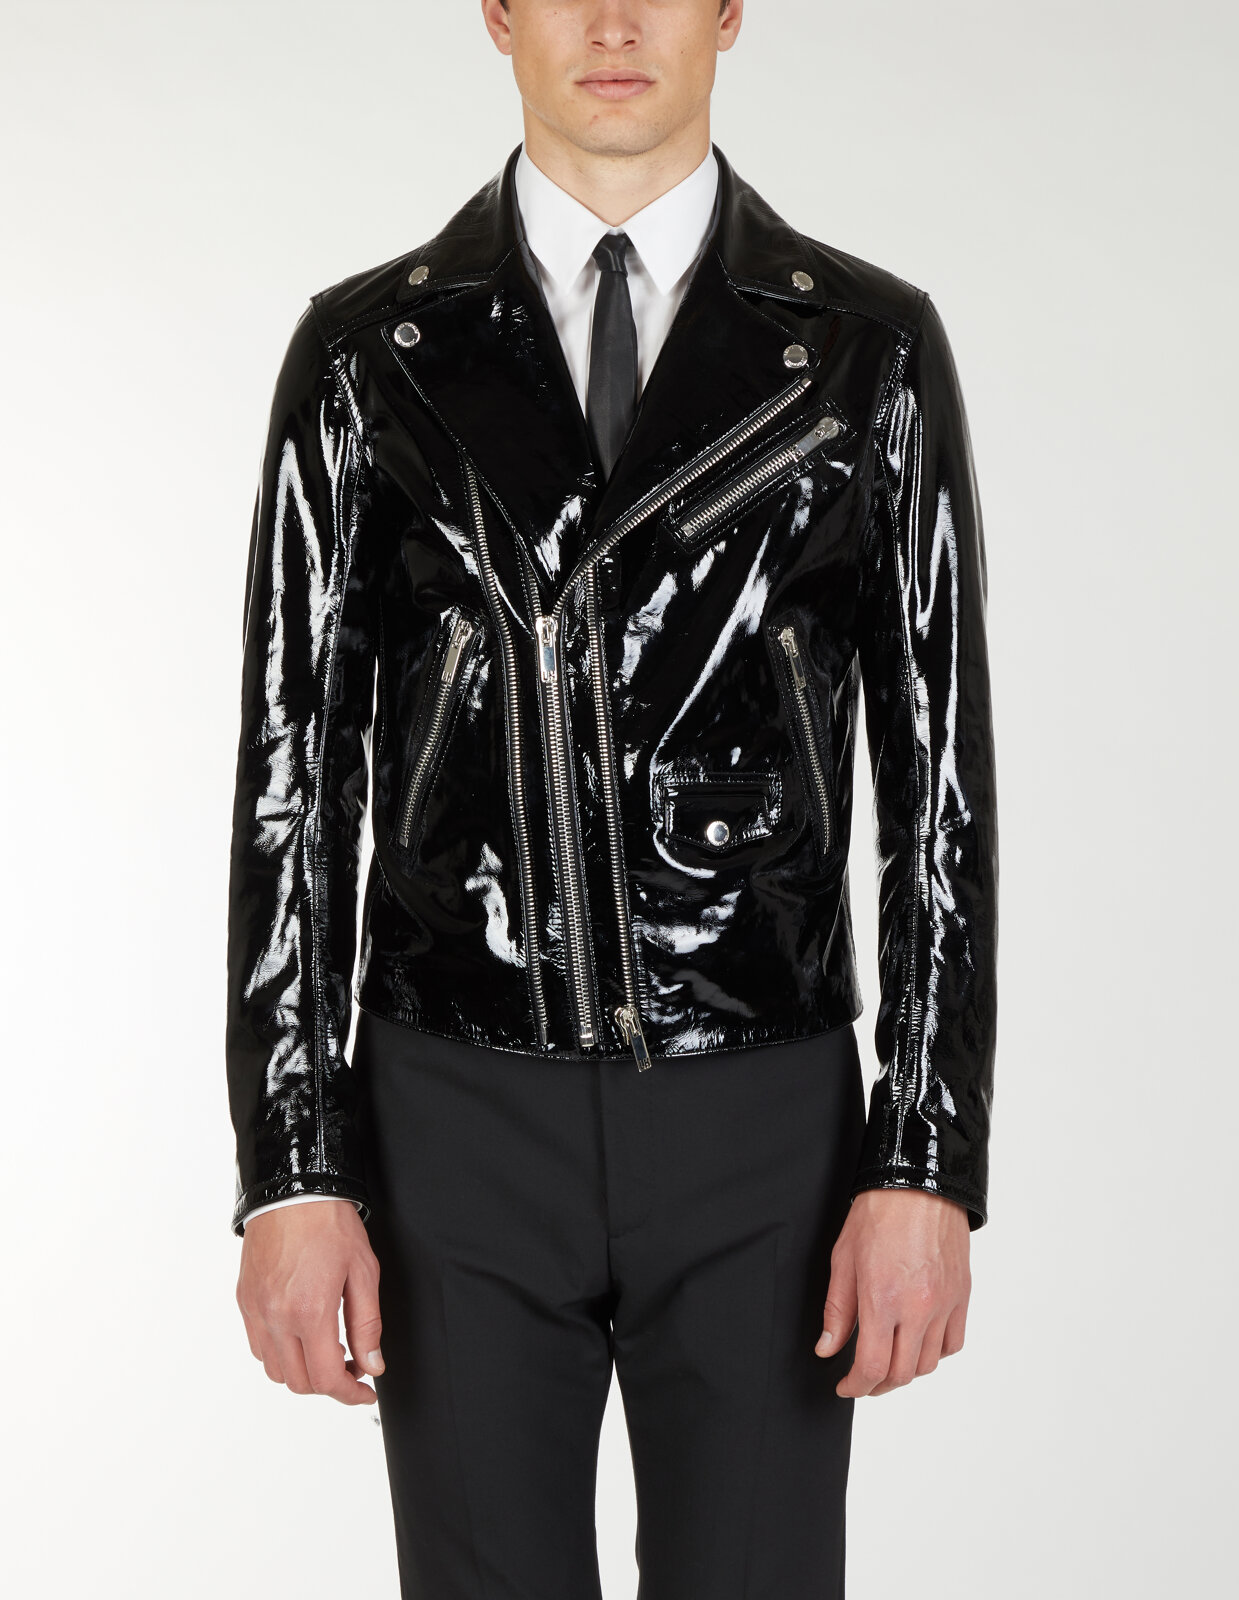 Perfecto Leather Jacket - Les Hommes